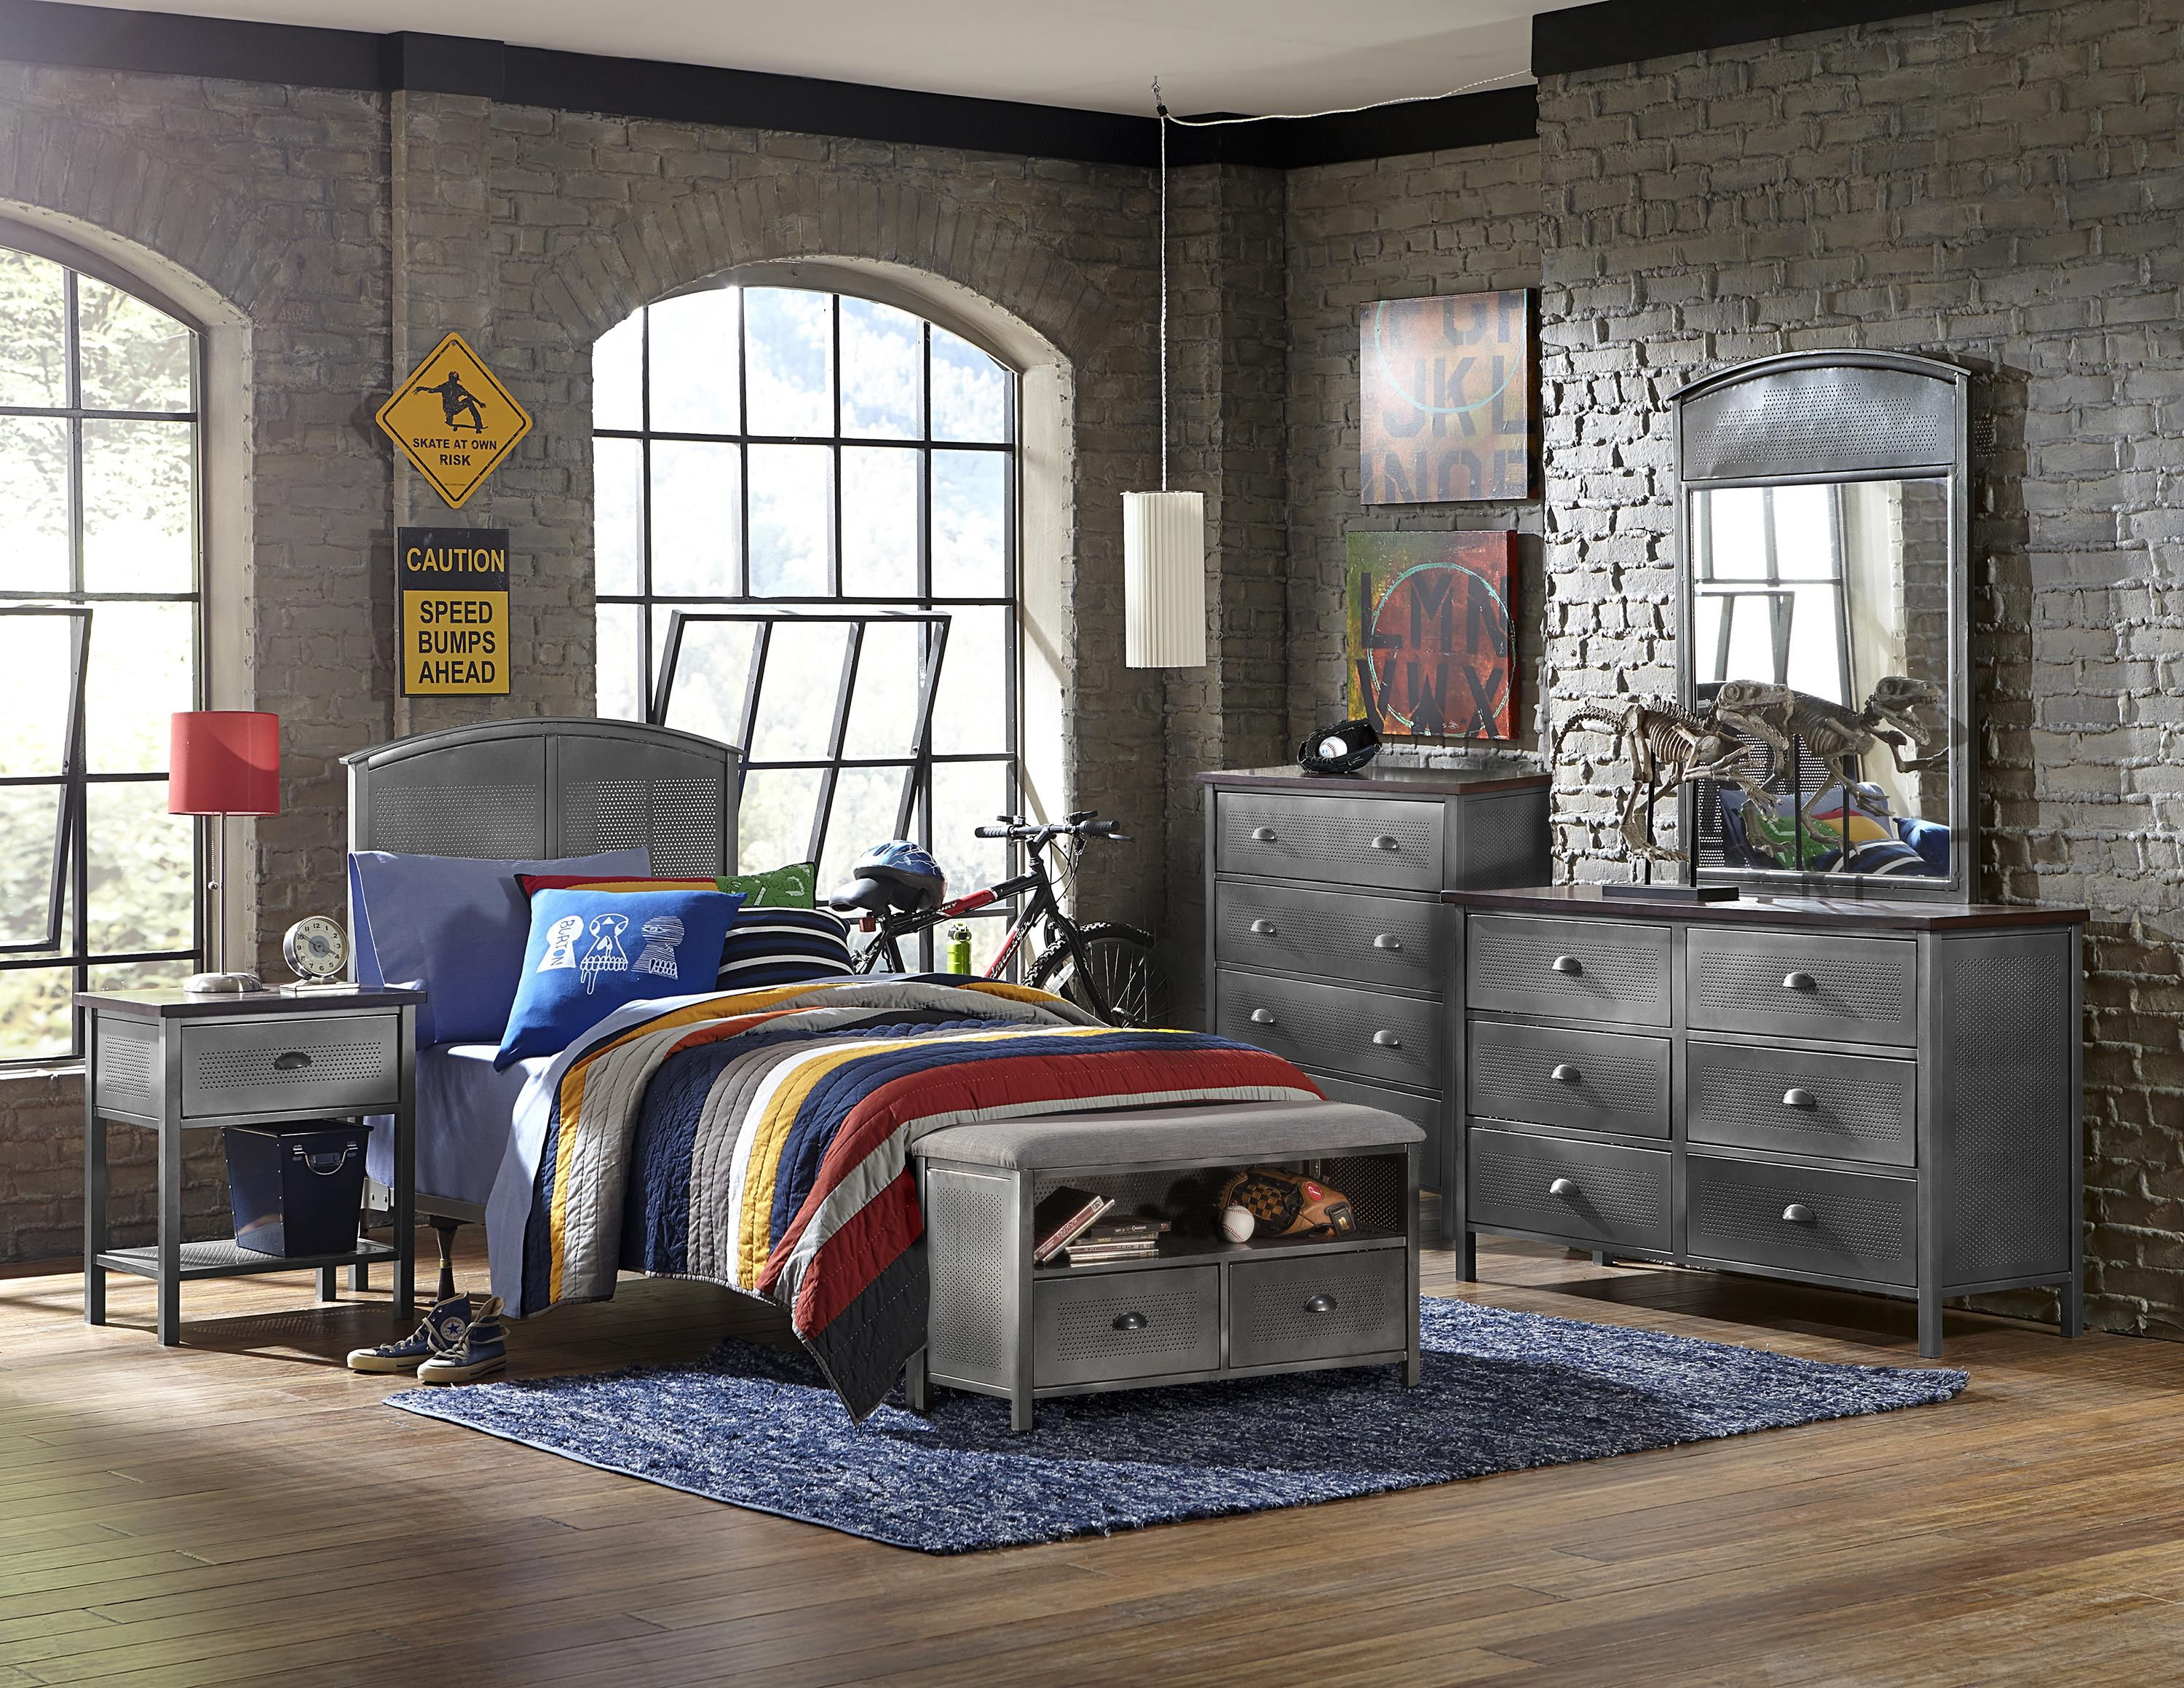 Urban Quarters Five Piece Panel Twin Bed Set with Bench by